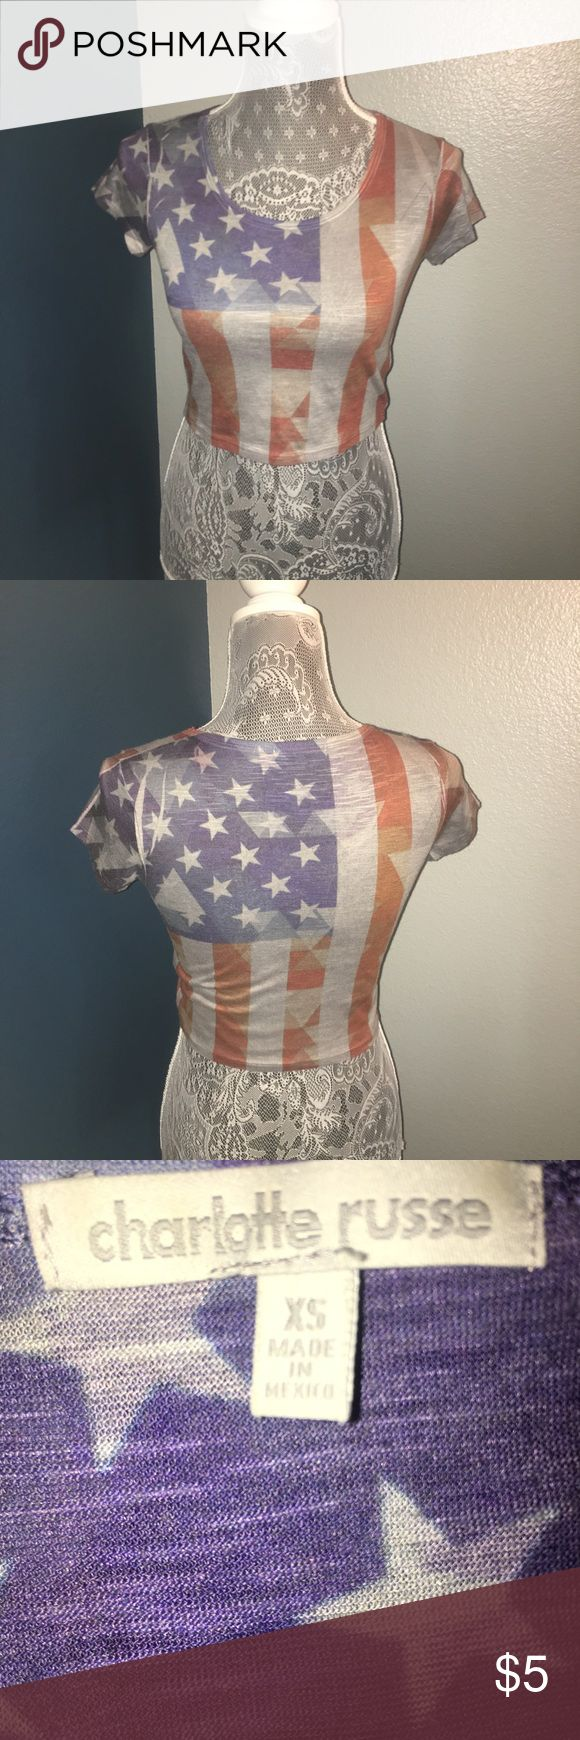 American Flag Crop Top XS American Flag Crop Top XS Charolette Russe Distressed Flag 4th of July / Independence Day Short Sleeve Crop Top Made in Mexico Charlotte Russe Tops Crop Tops